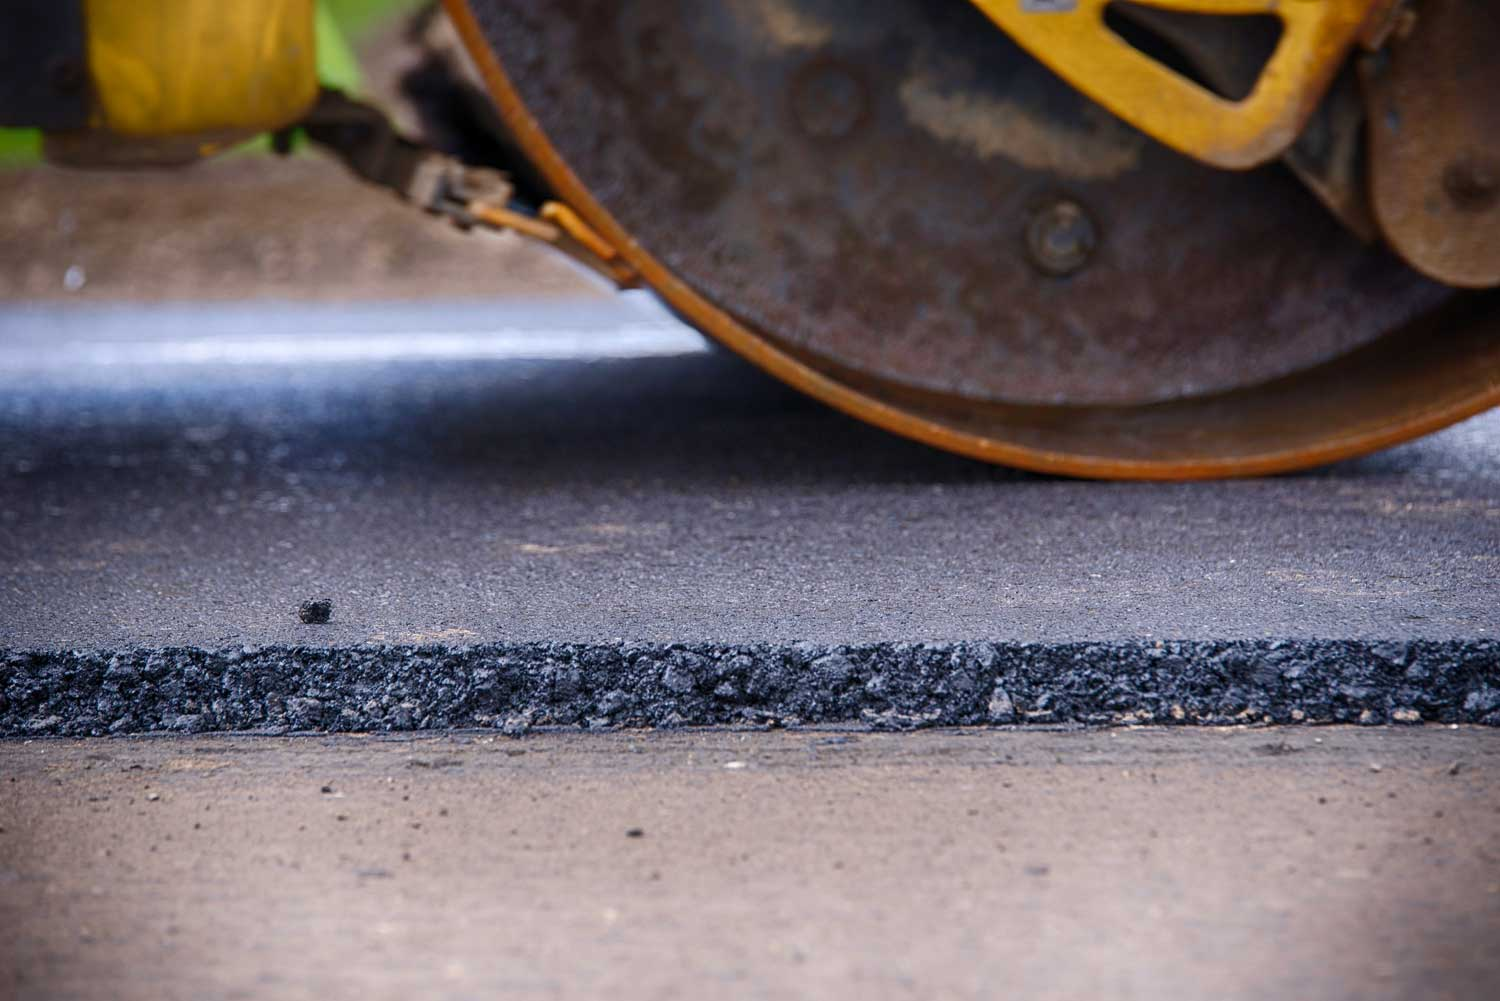 Steamroller compacting and flattening a new asphalt driveway